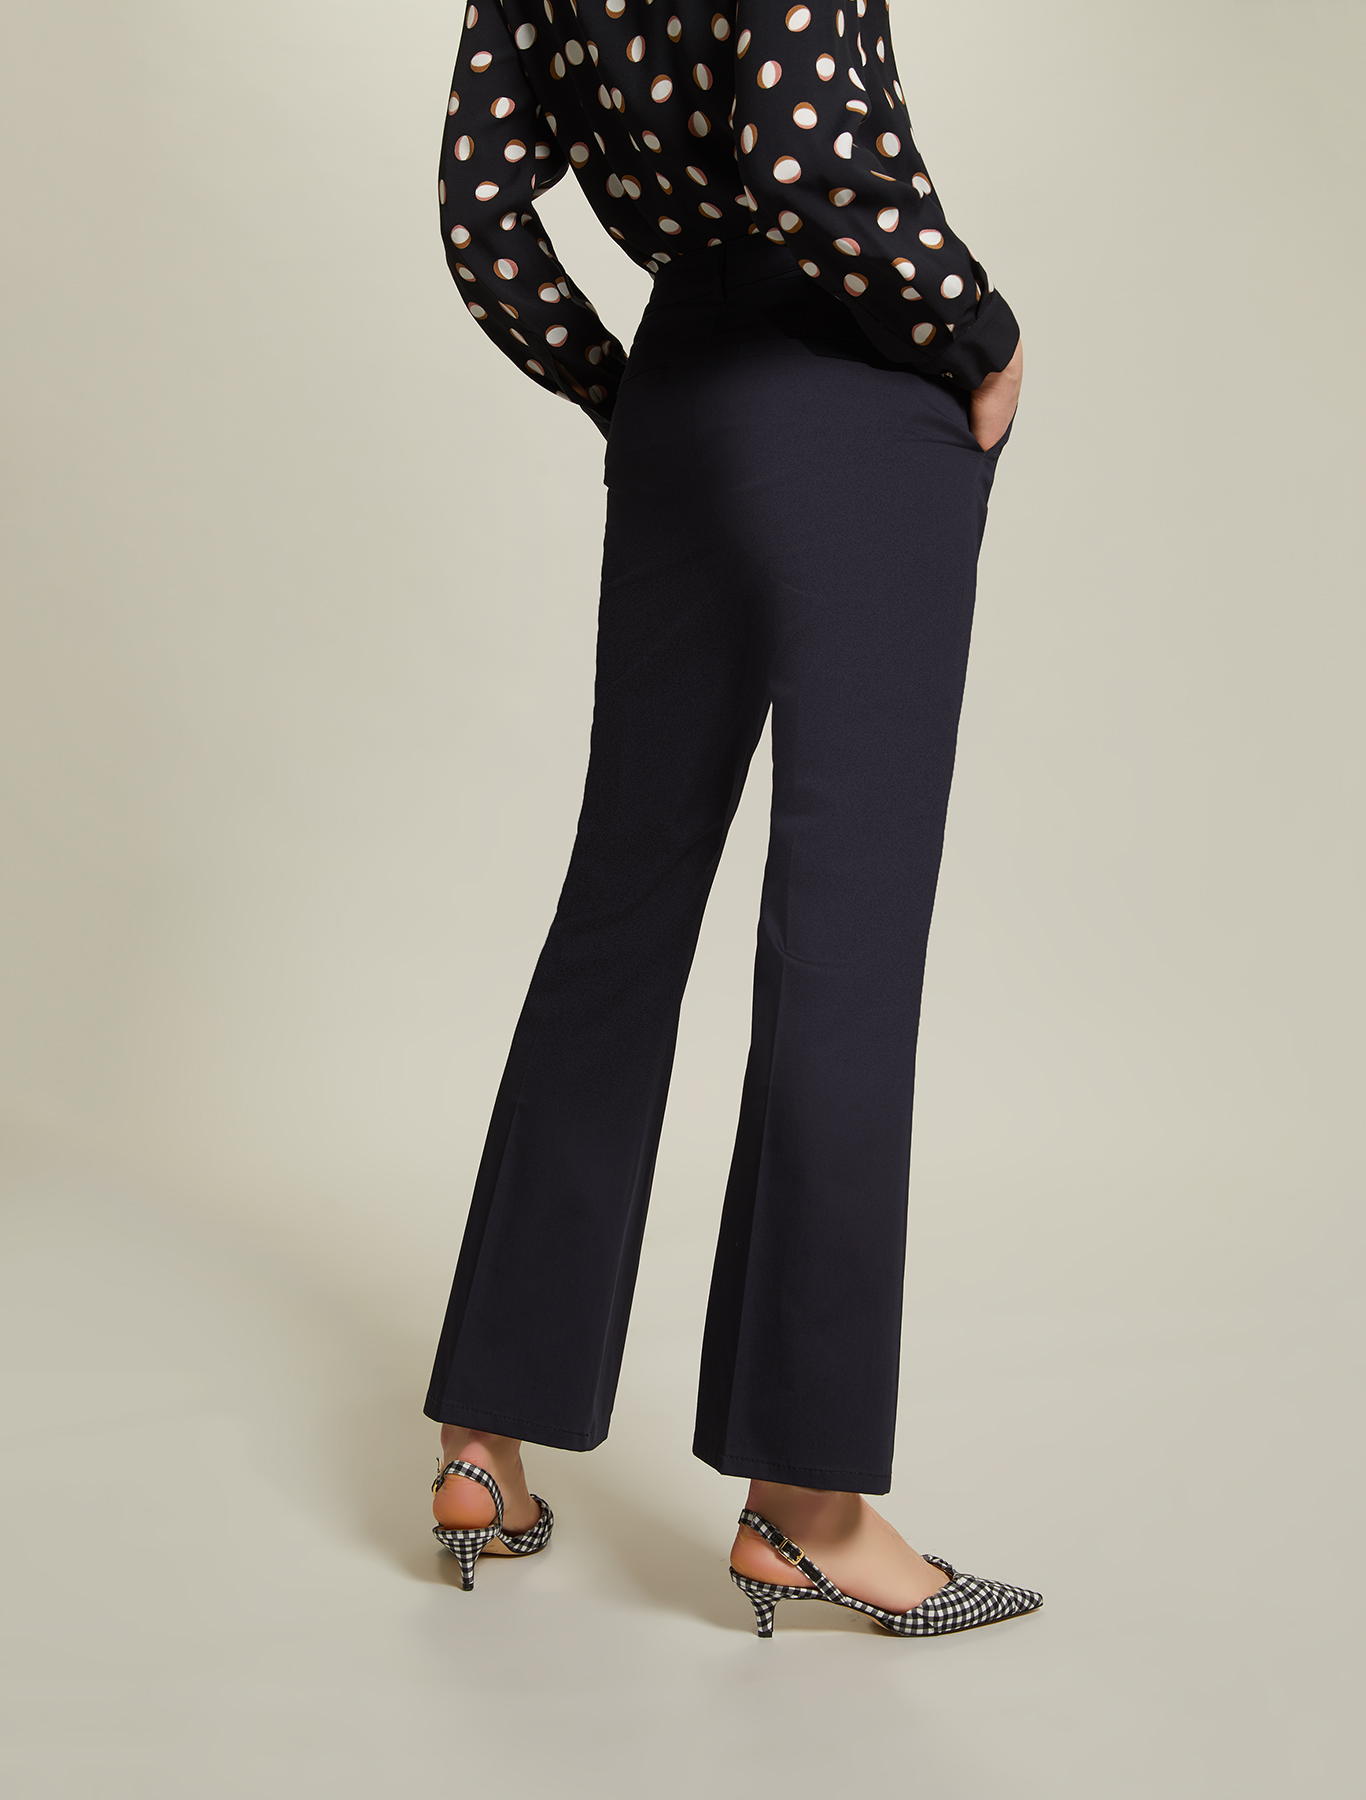 Cotton satin trousers - navy blue - pennyblack